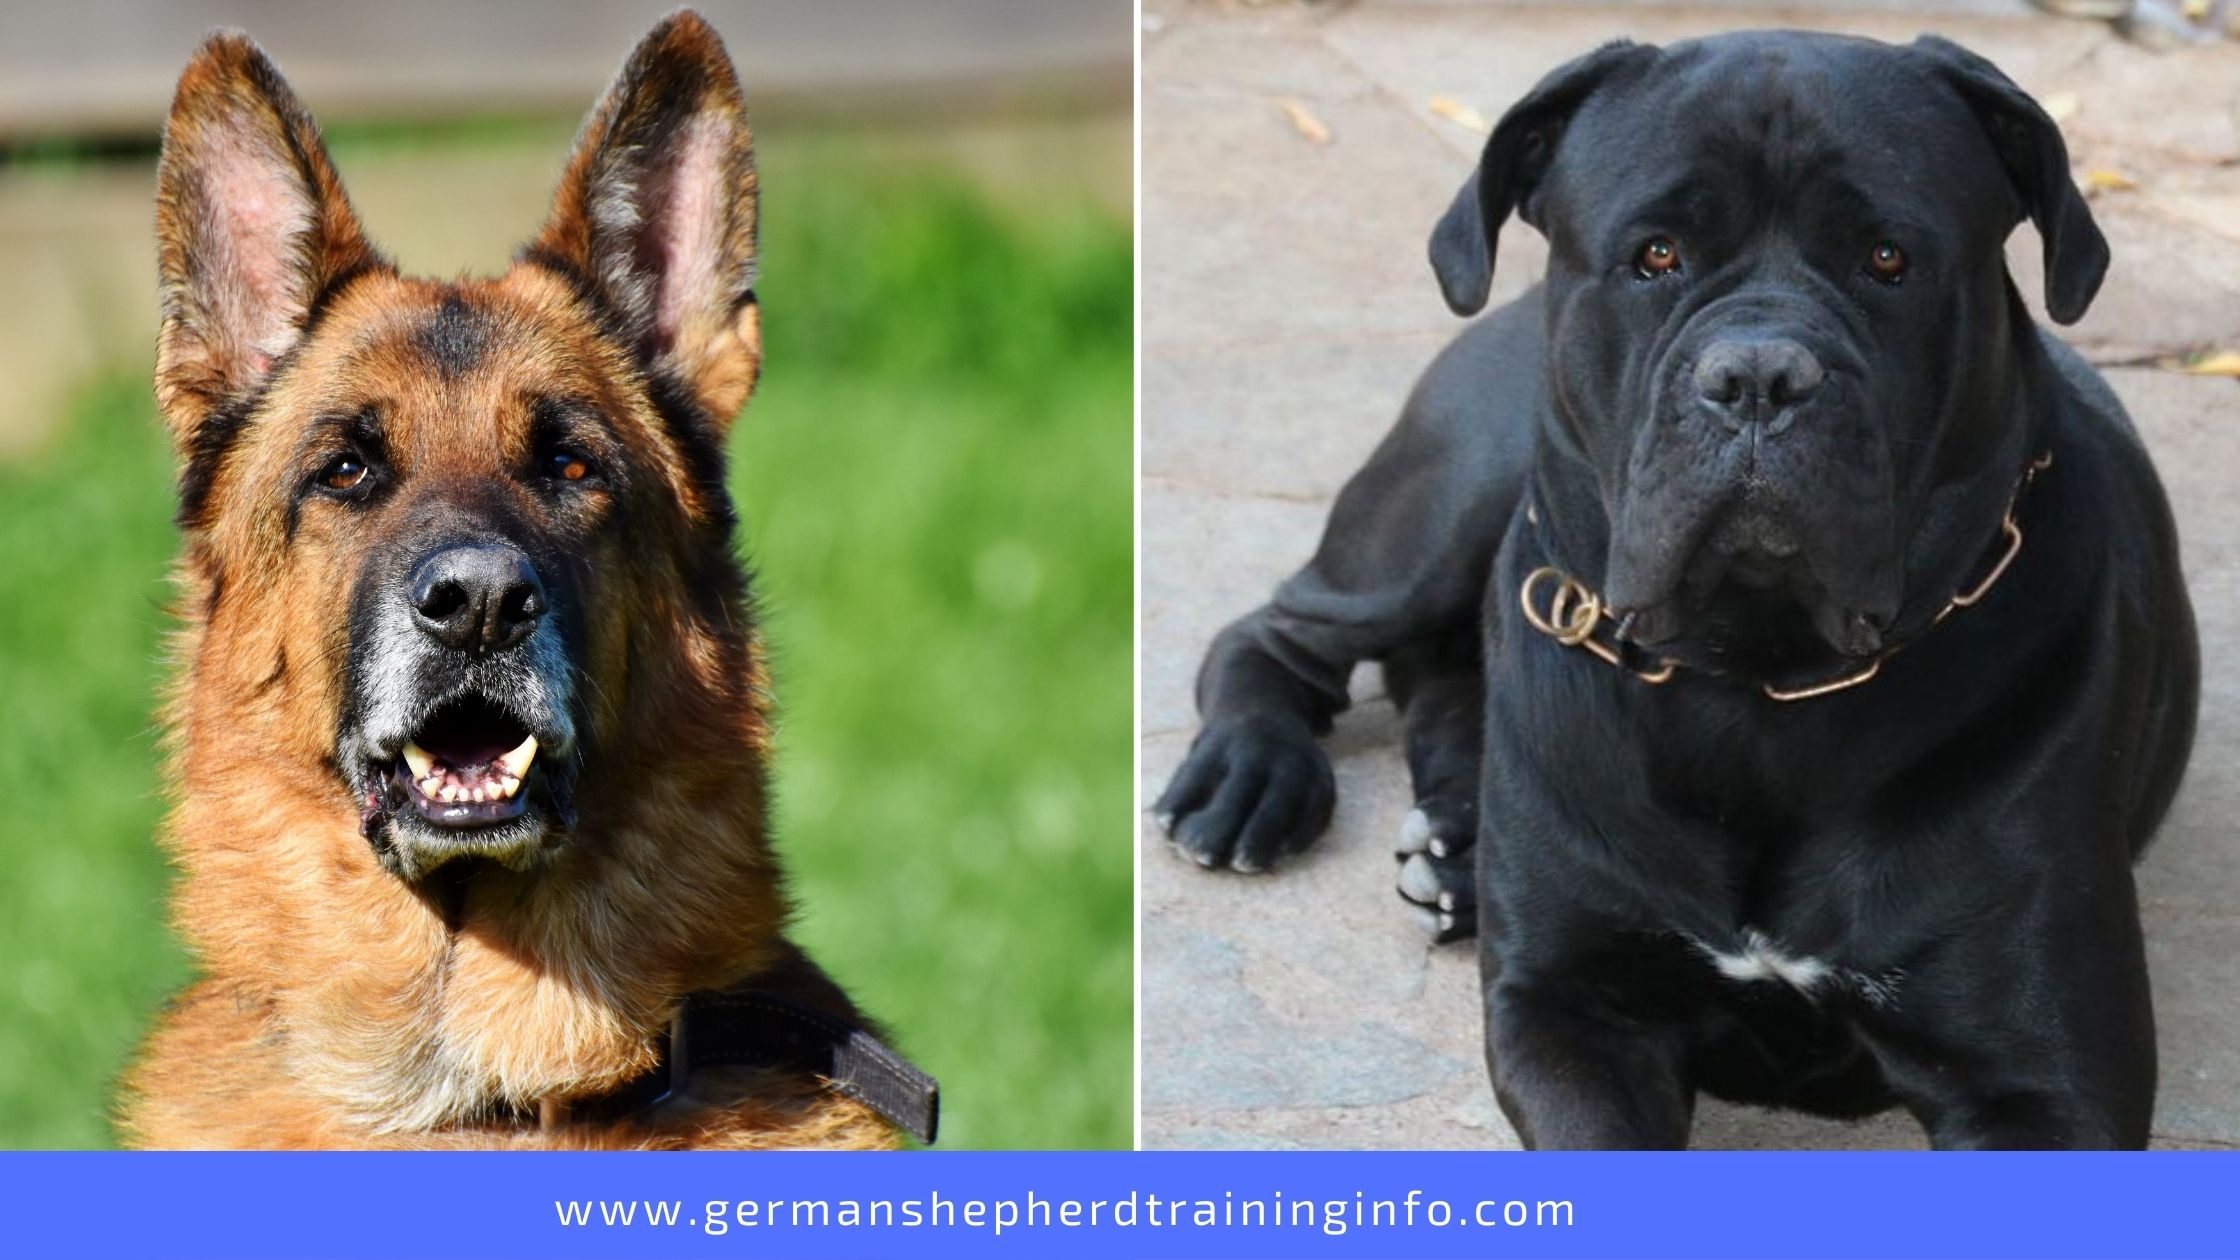 German Shepherd vs Cane Corso: Size, Coat, Energy, Health, Food, Nutrition, Life Span, Height and Weight Comparison